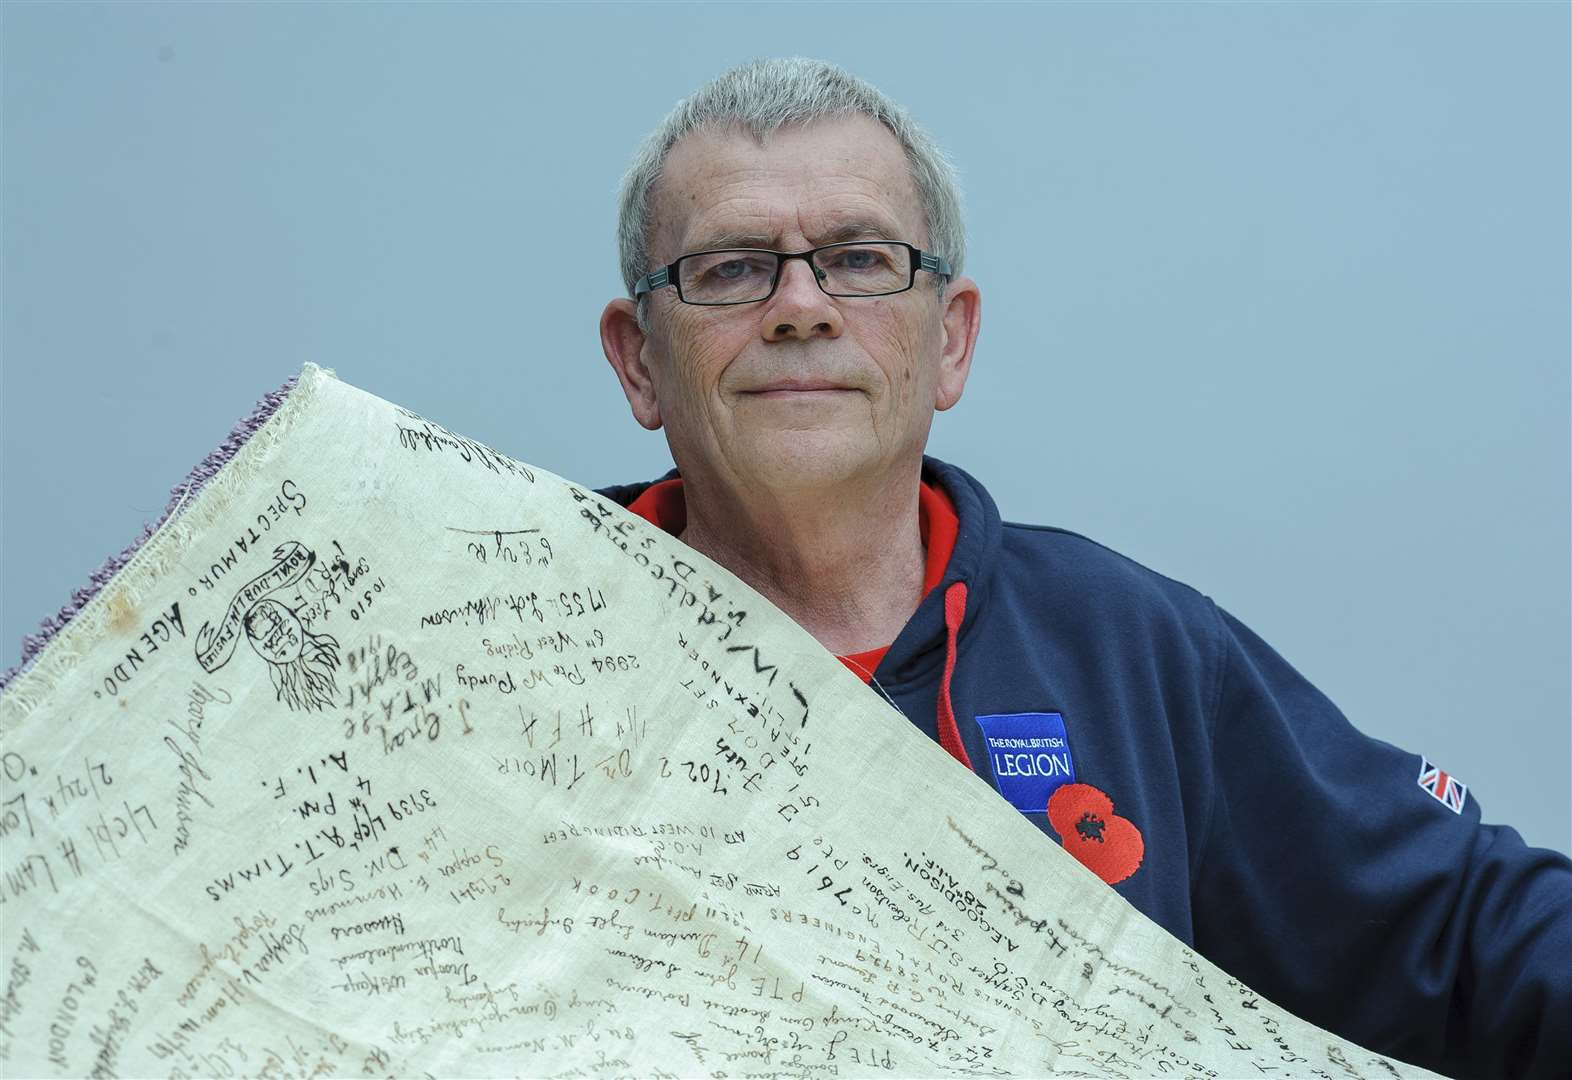 Tablecloth holds the key to Harleston's WWI hospital history